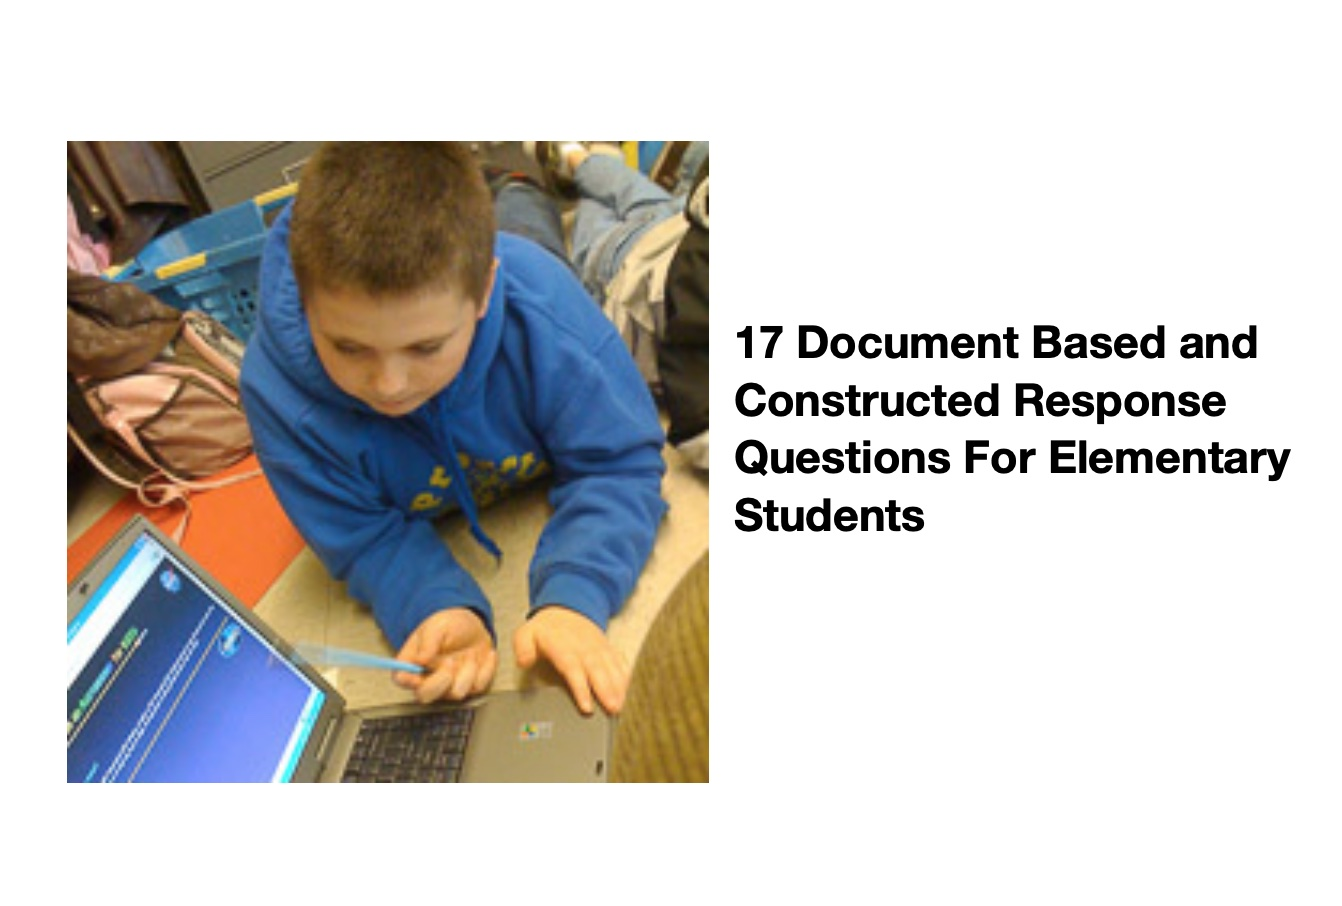 17 Document Based and Constructed Response Questions For Elementary Students